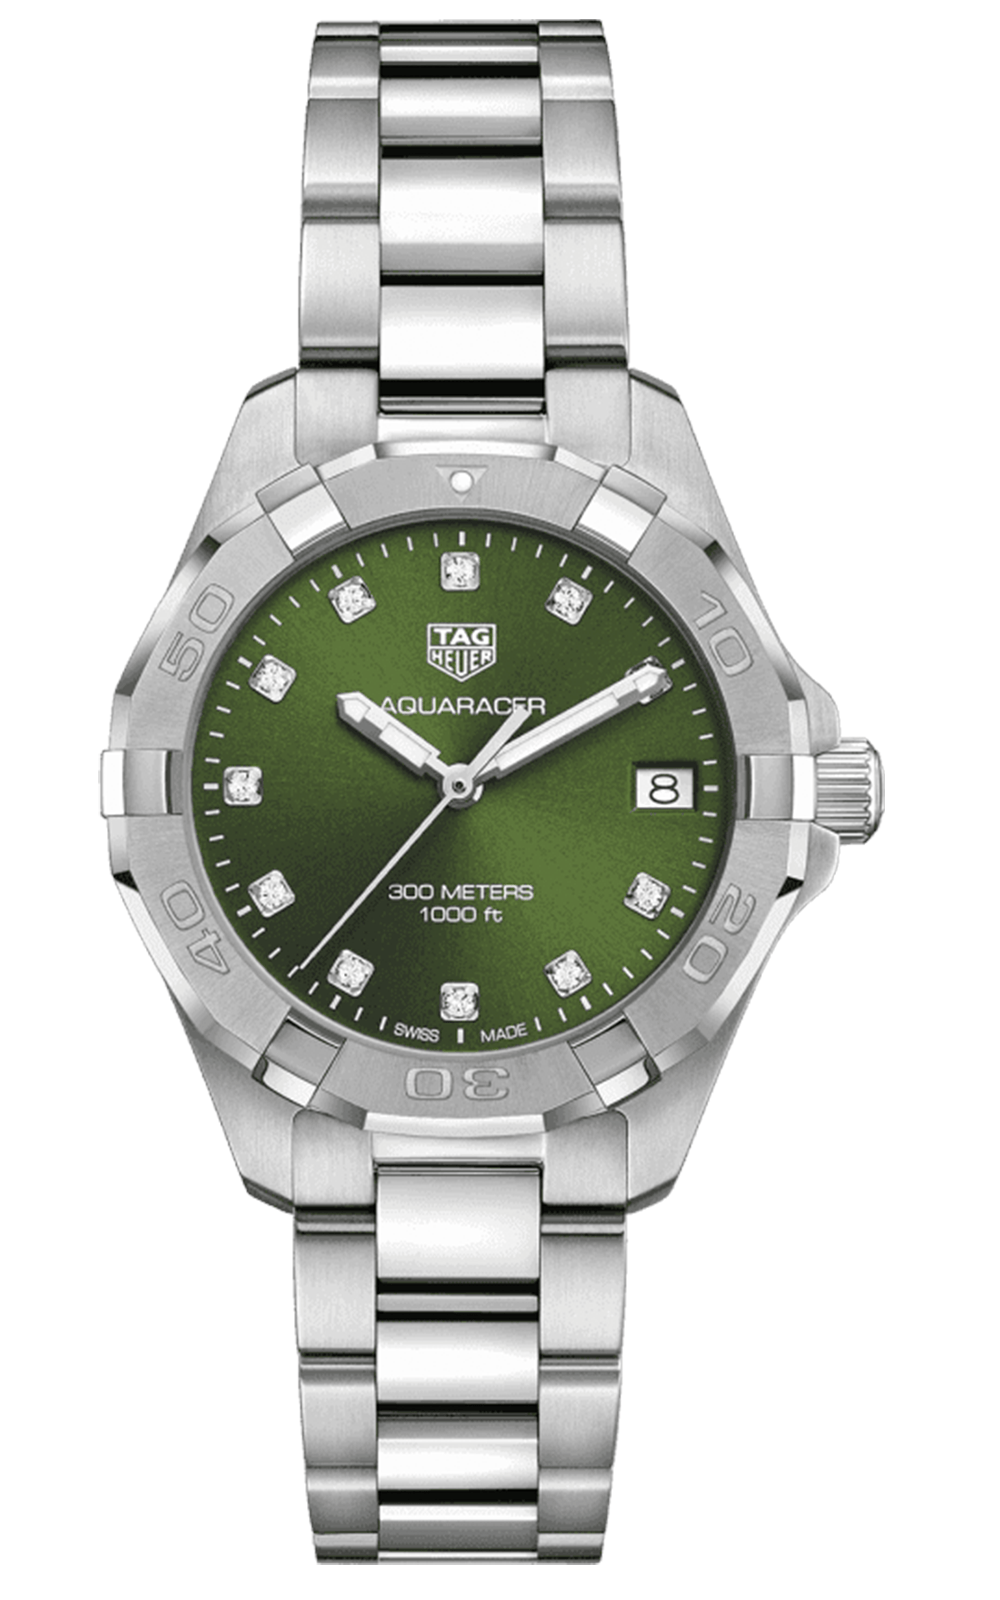 Hình Đồng hồ TAG HEUER AQUARACER - Quartz Watch - Diameter 32 mm WBD1316.BA0740